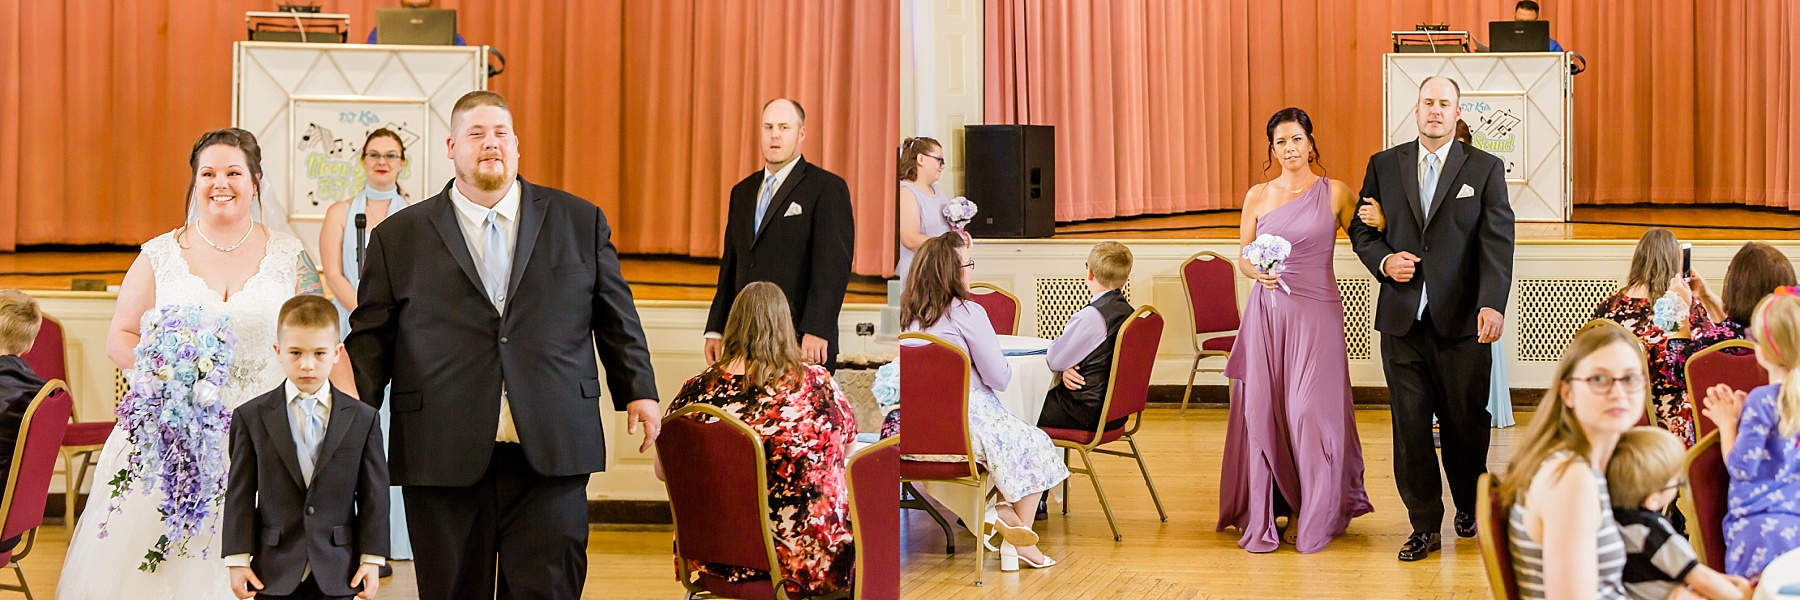 lafayette indiana wedding photographer photography thomas duncan hall_0137.jpg